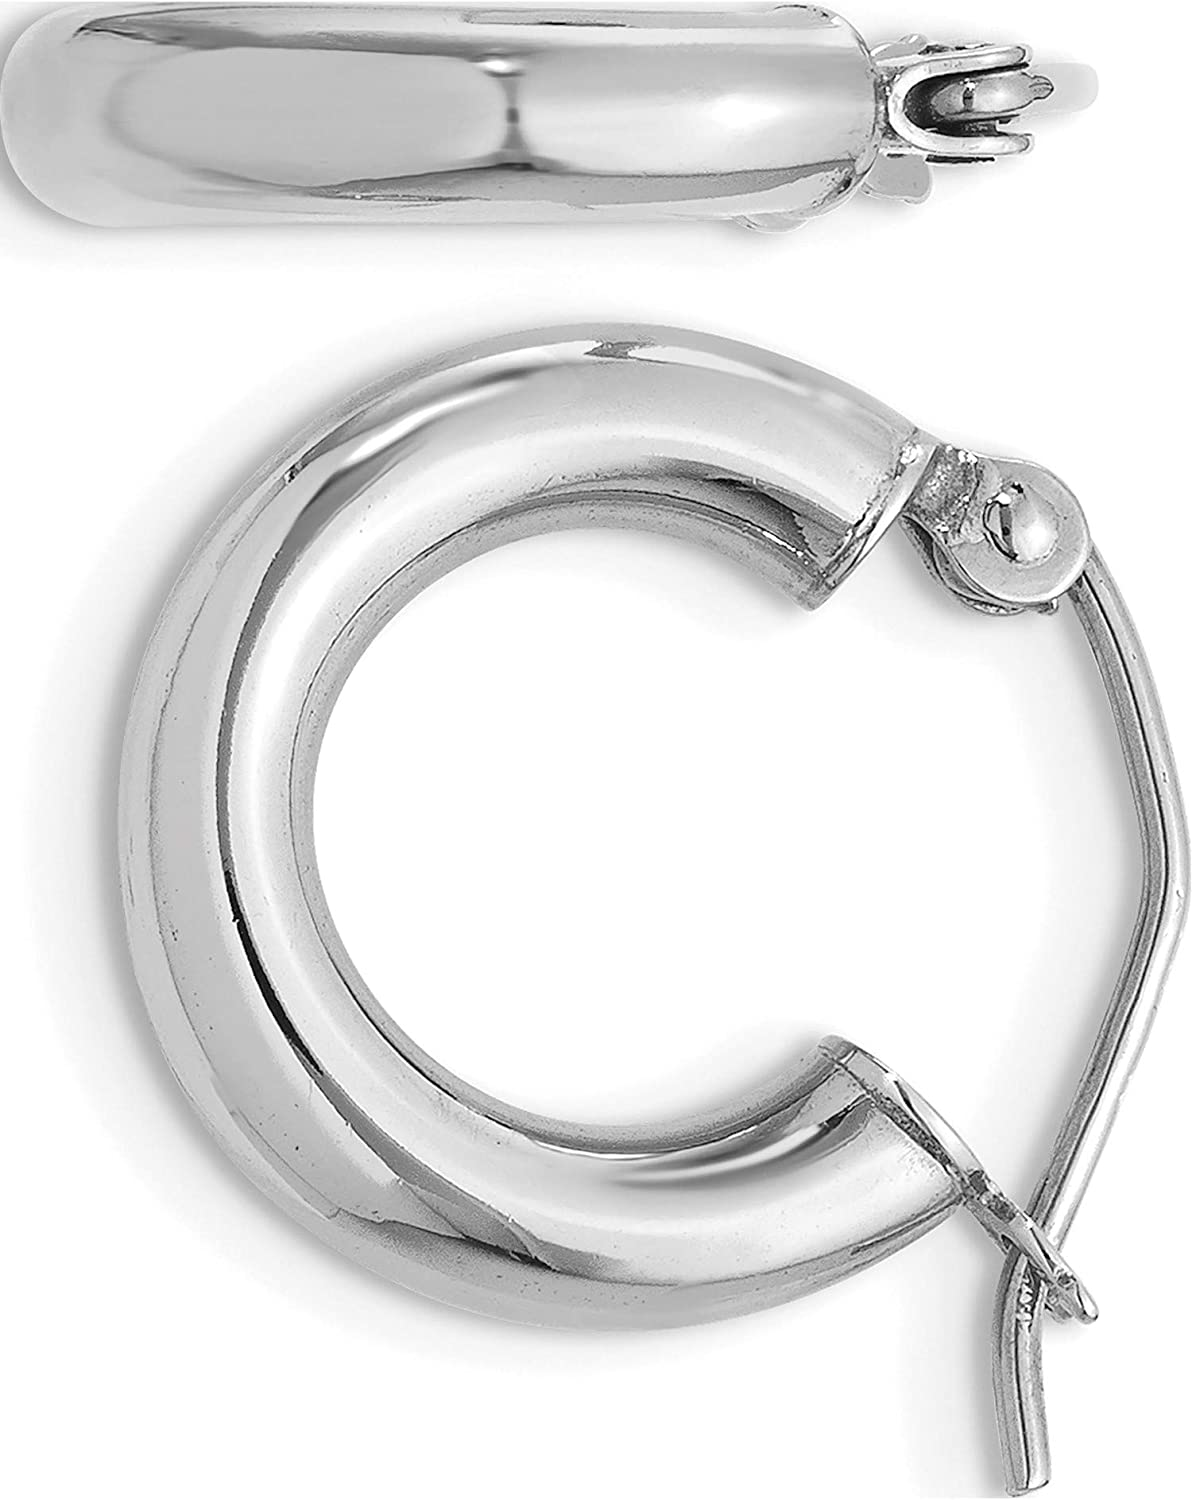 Year-end annual account 14K Bombing new work White Gold Polished 3Mm Lightweight Hoop Earrings Leng Tube